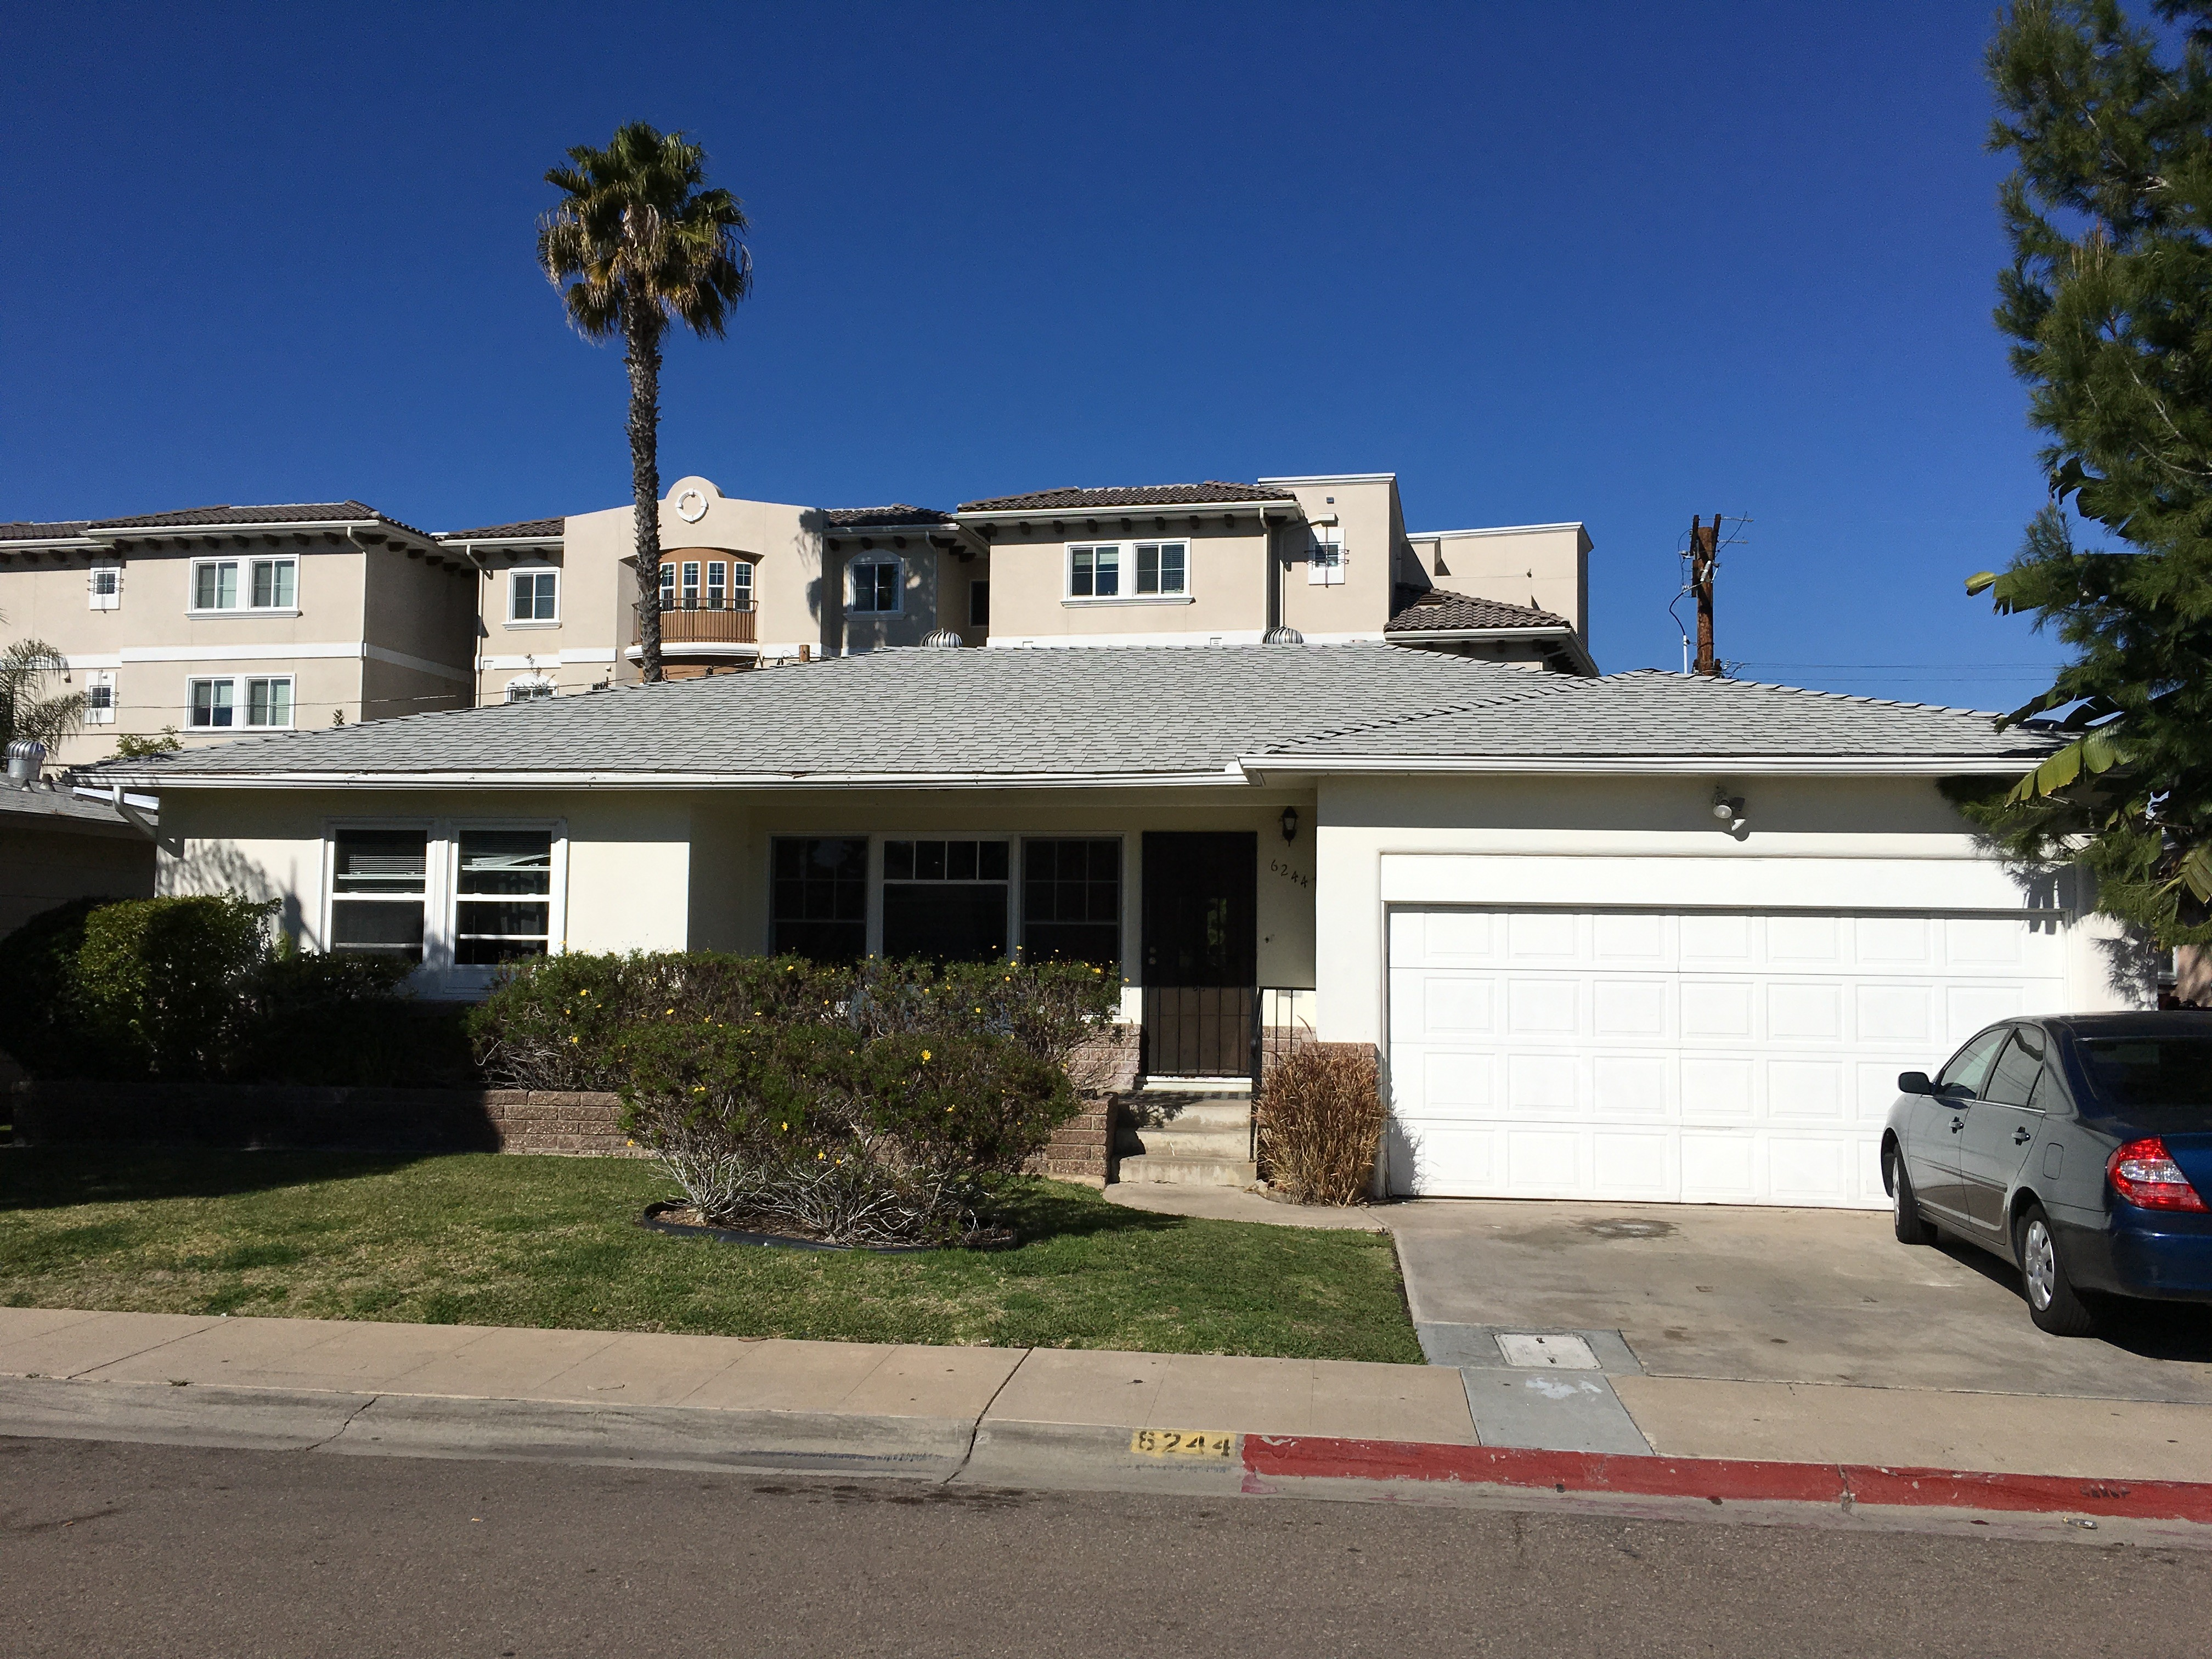 6244 Mary Ln Dr San Diego Ca 92115 5 Bedroom Apartment For Rent Padmapper